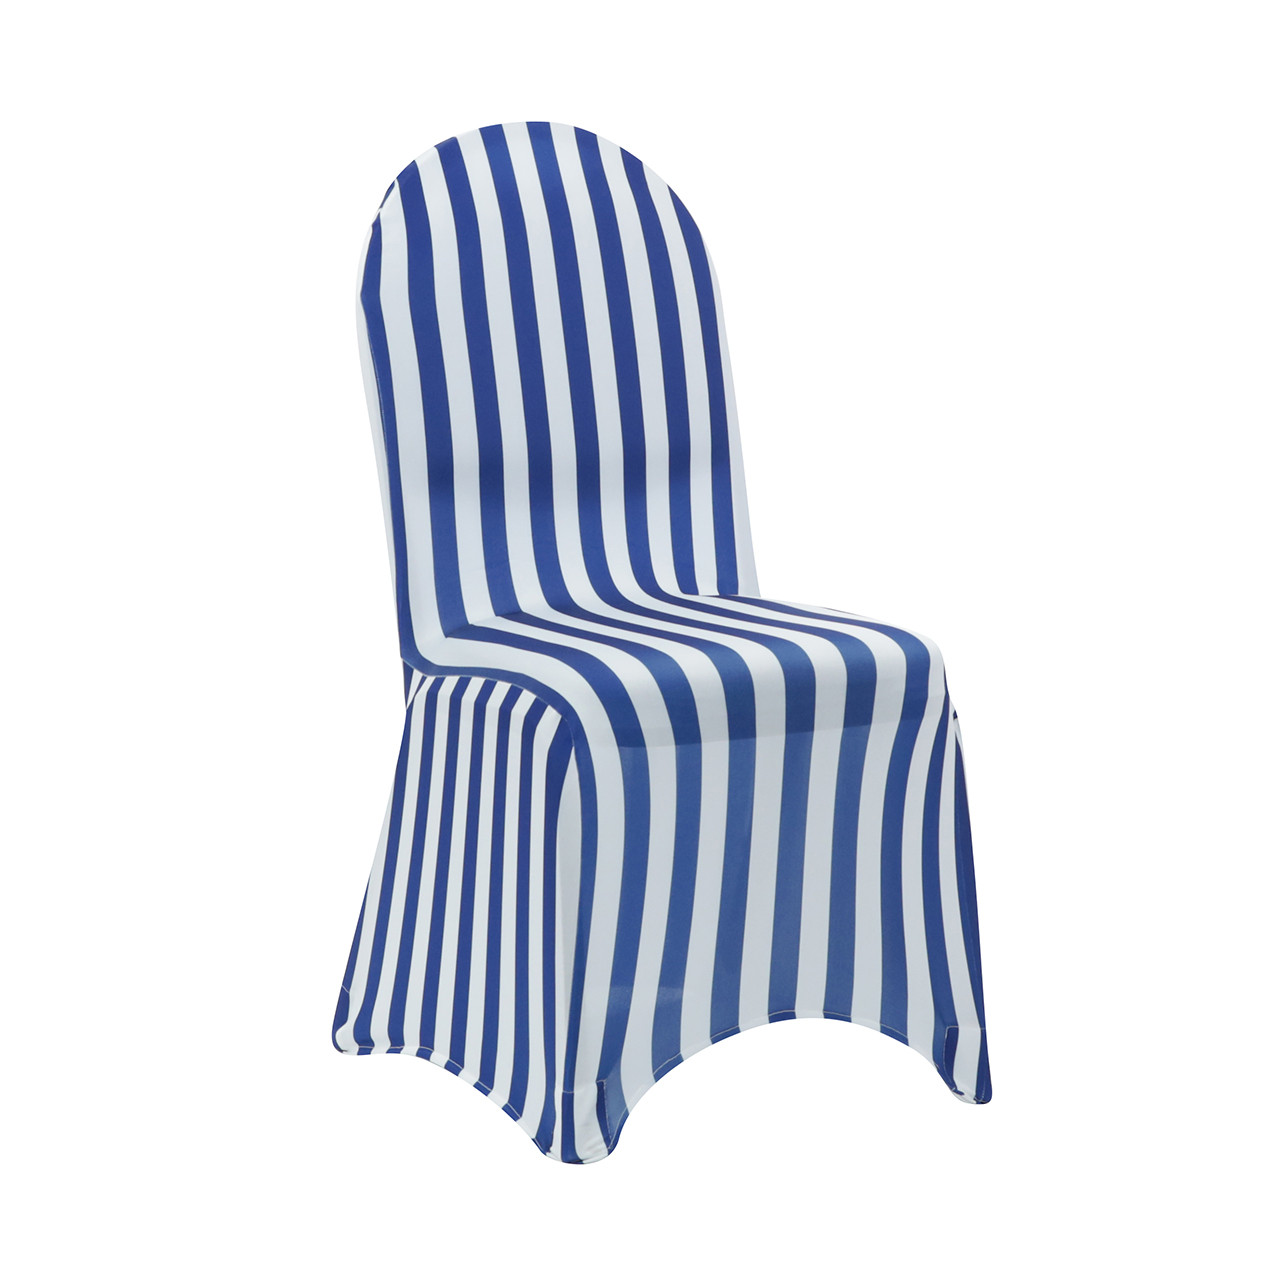 Royal Blue Chair Spandex Chair Cover Striped White And Royal Blue